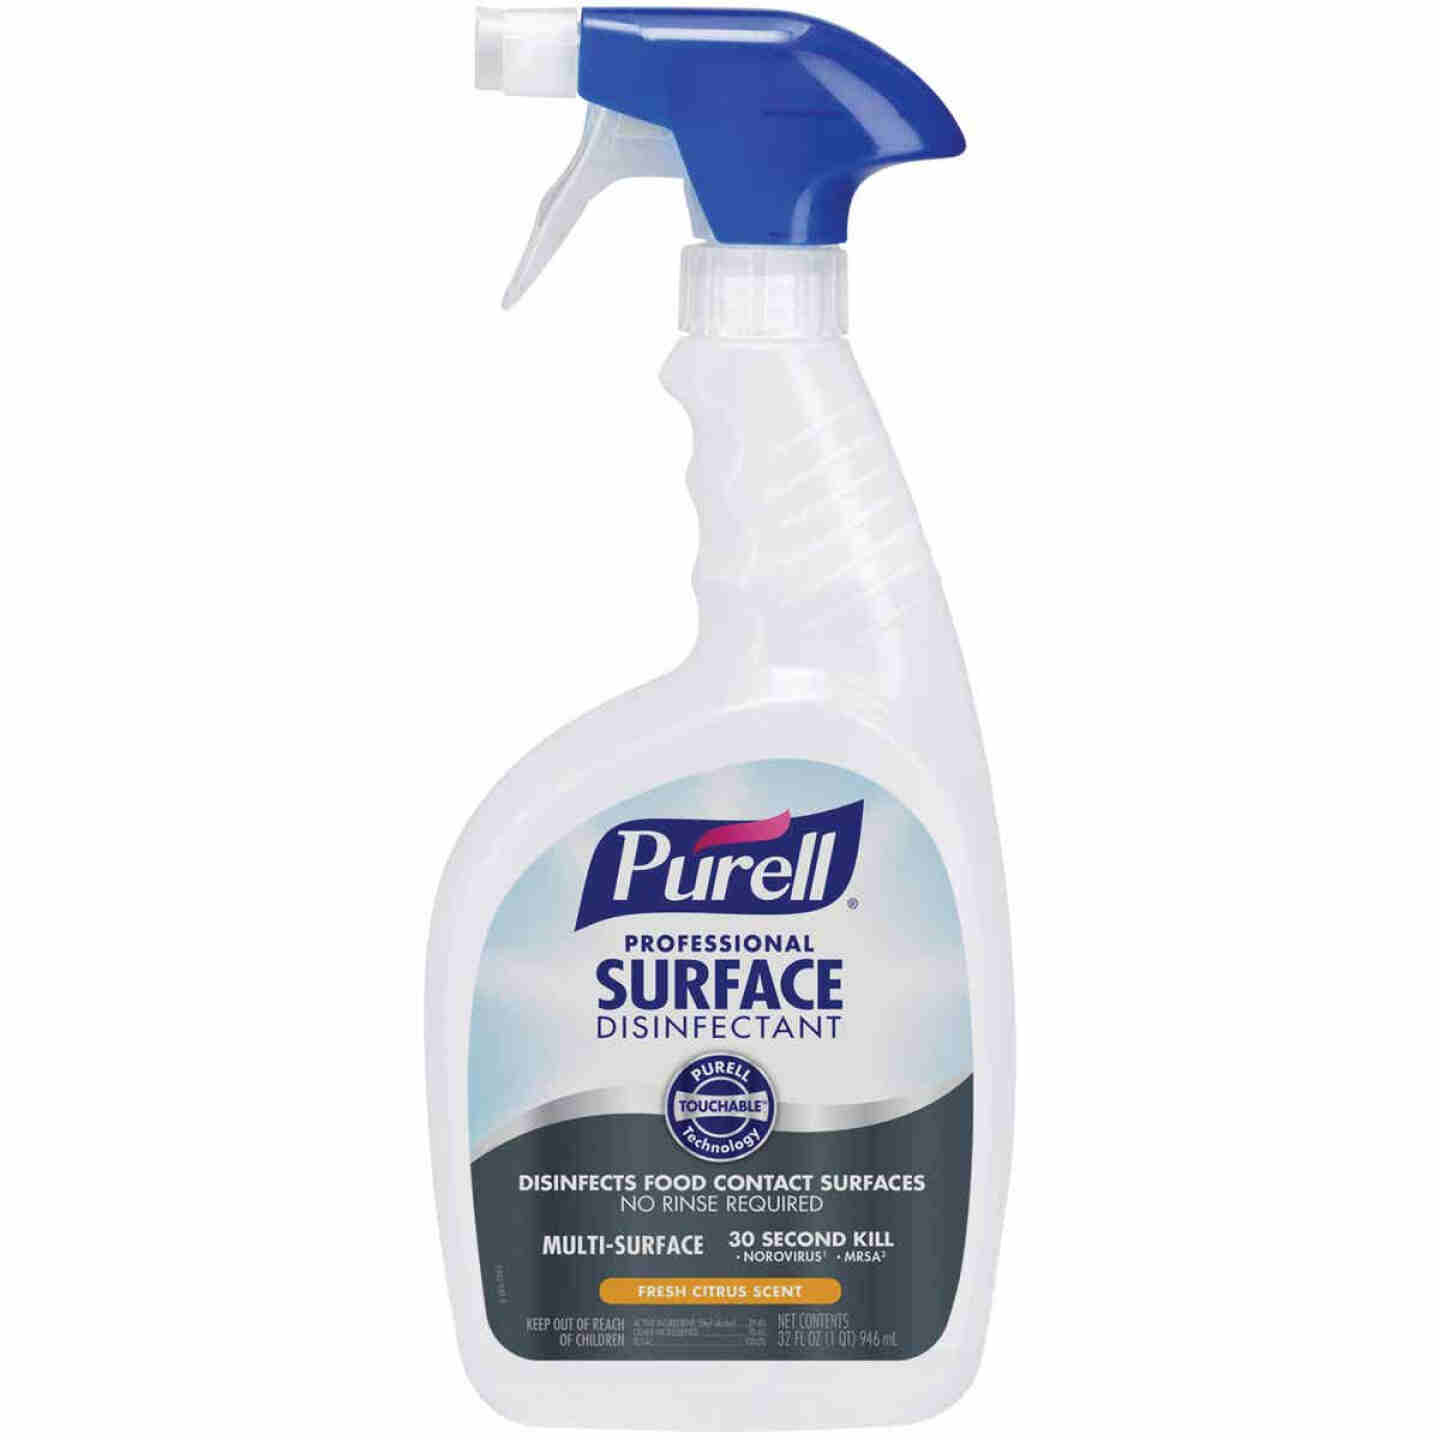 Purell Professional Surface Disinfectant Spray (6 Pack with 2 Trigger Sprayers) Image 1